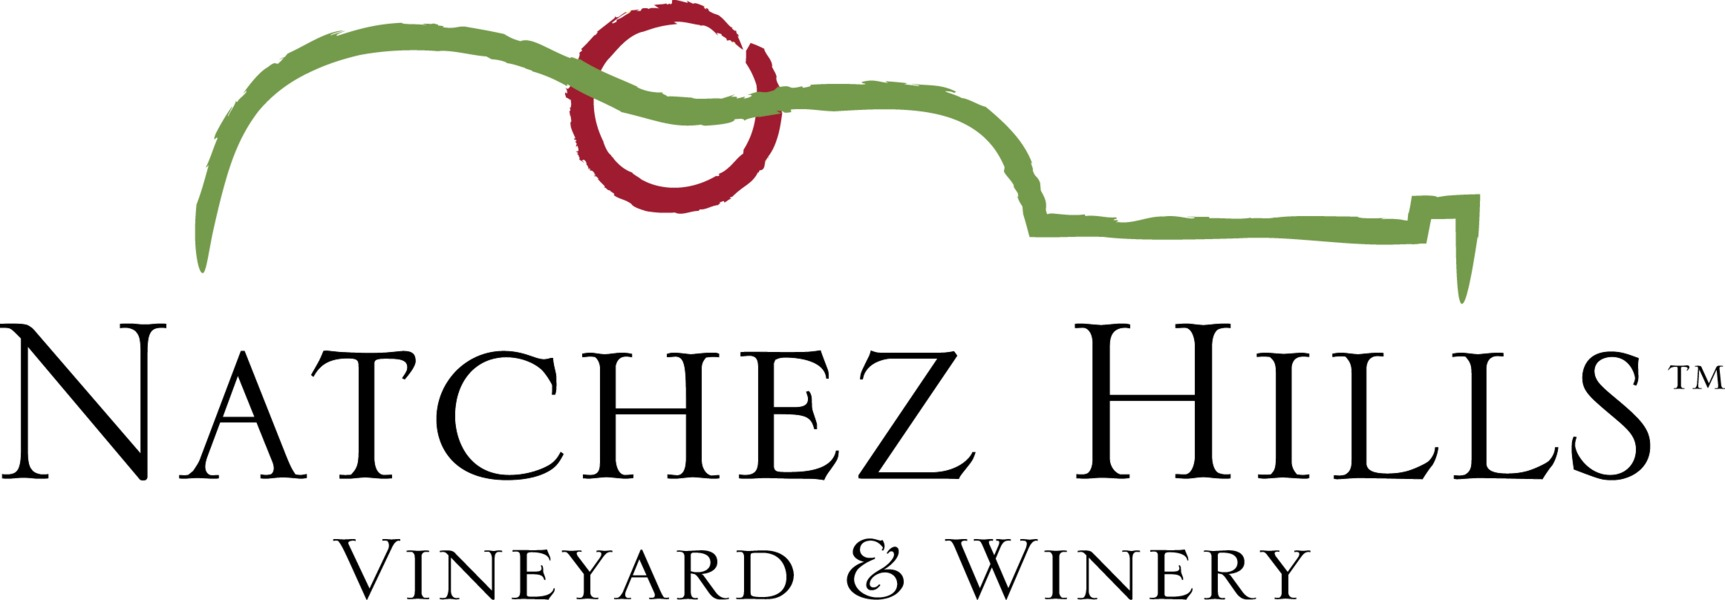 Brand image for Natchez Hills Vineyard